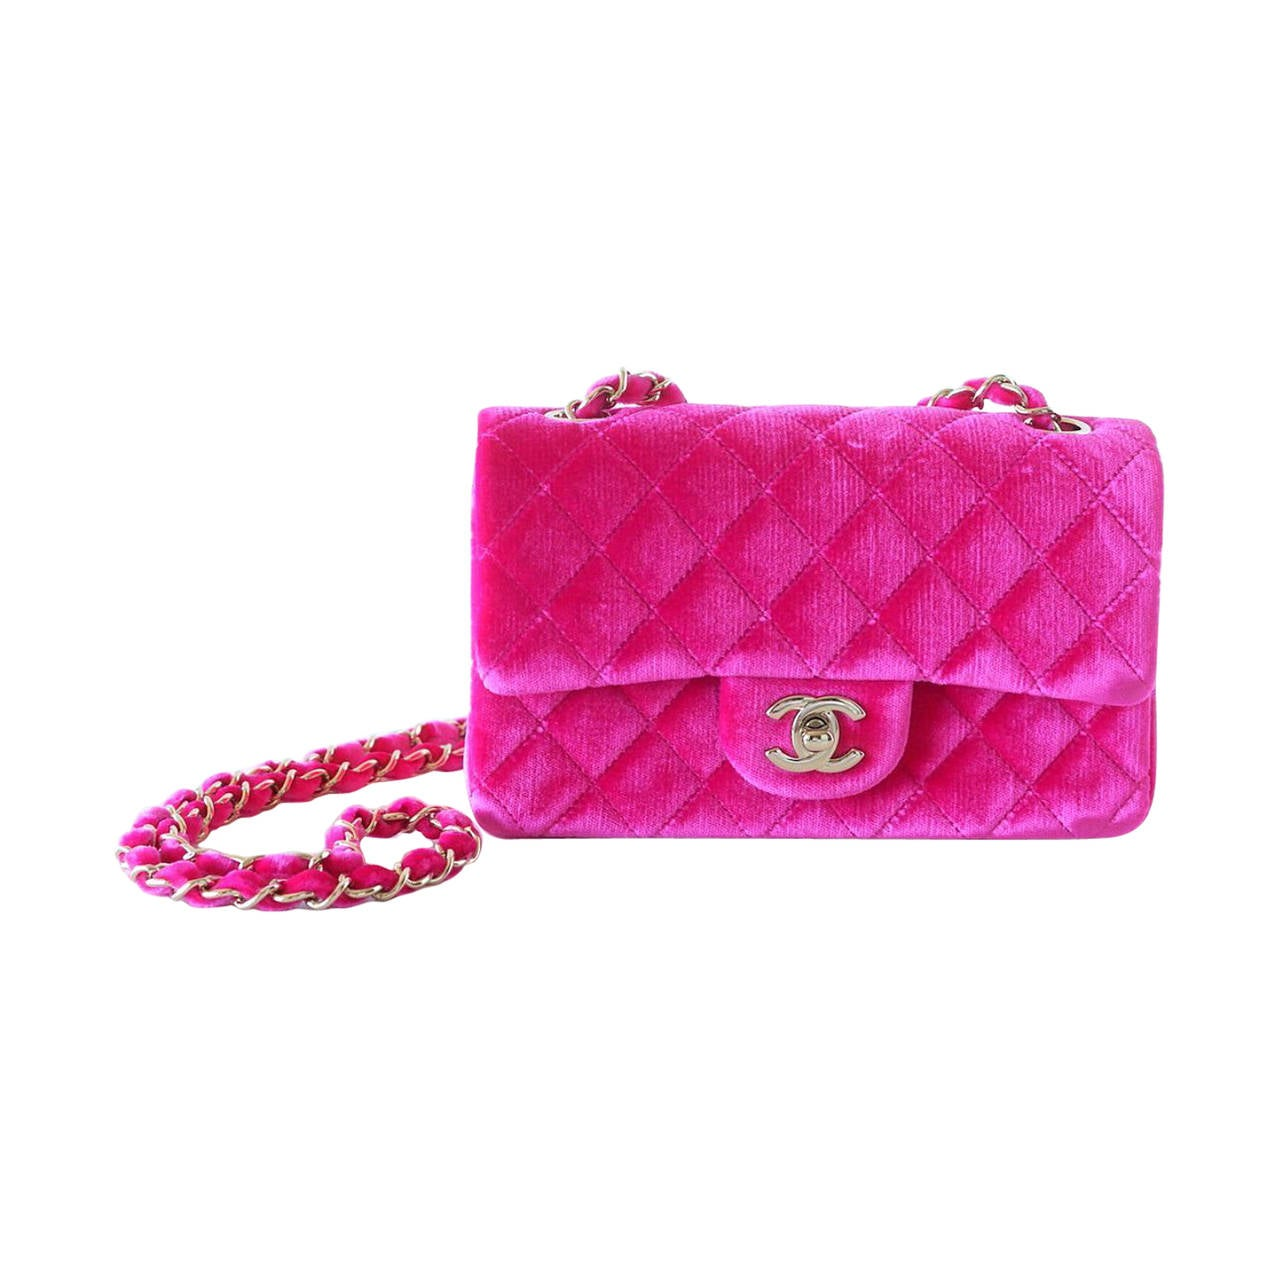 3040bdb7702b Pink Velvet Chanel Bag   Stanford Center for Opportunity Policy in ...